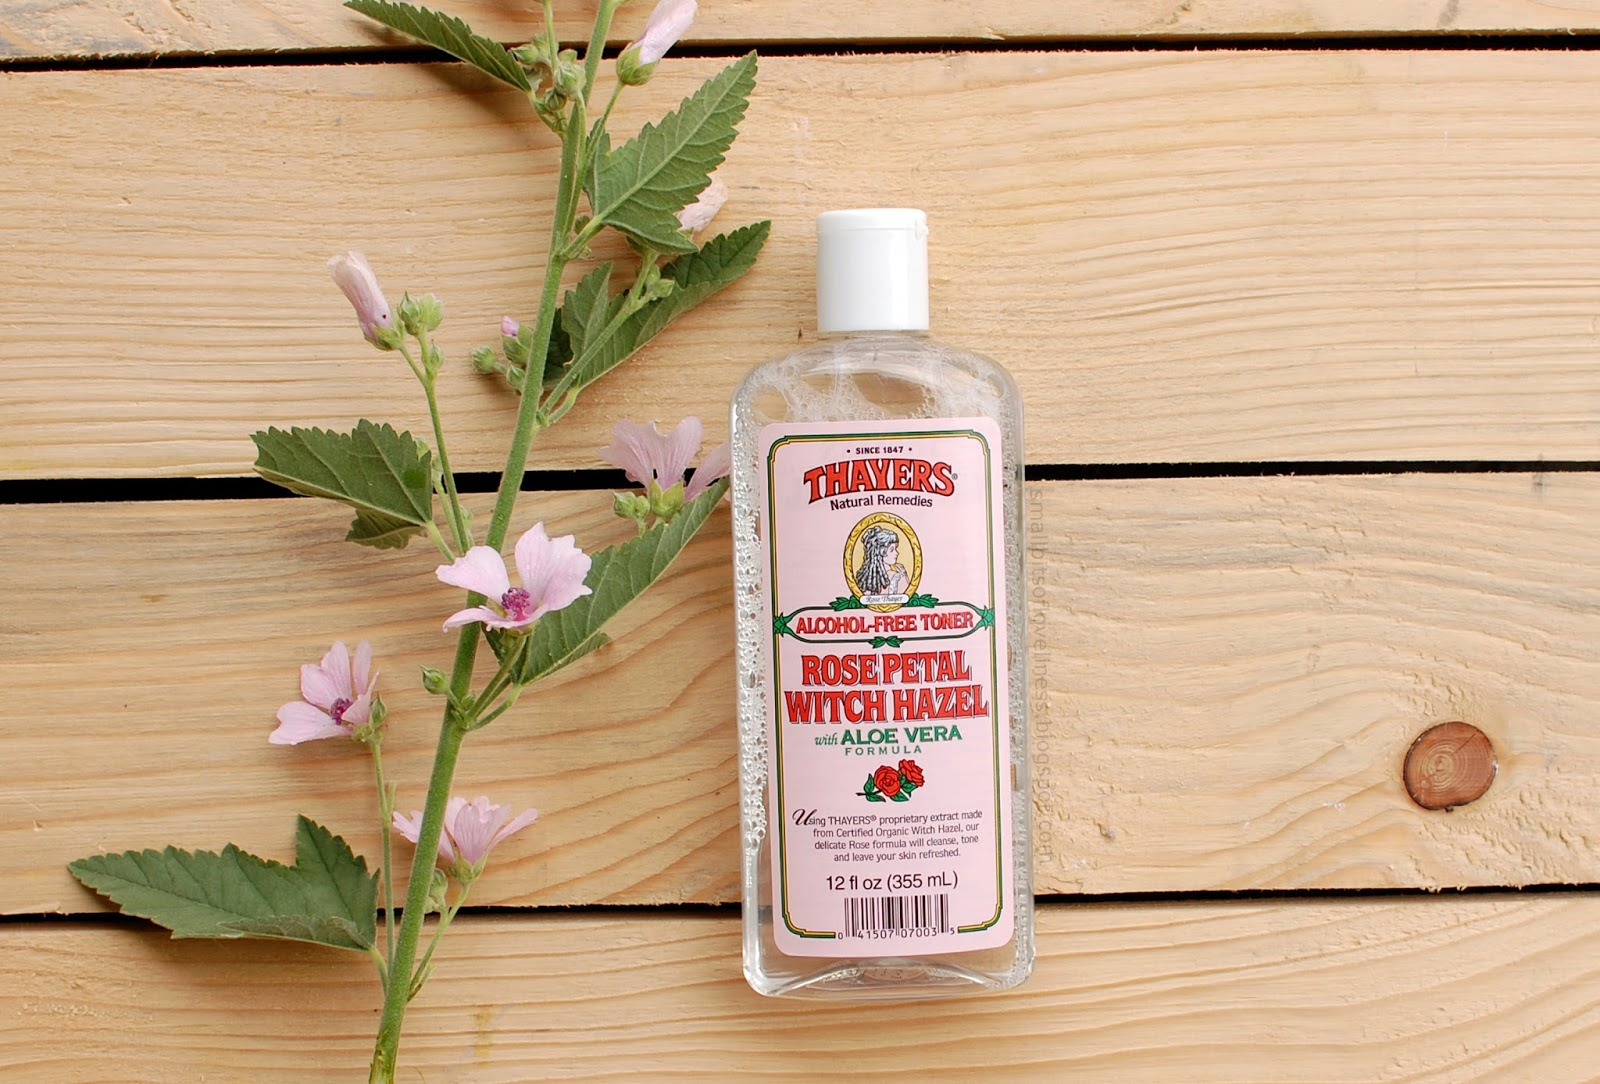 Thayers Alcohol-Free Toner Rose Petal Witch Hazel with Aloe Vera